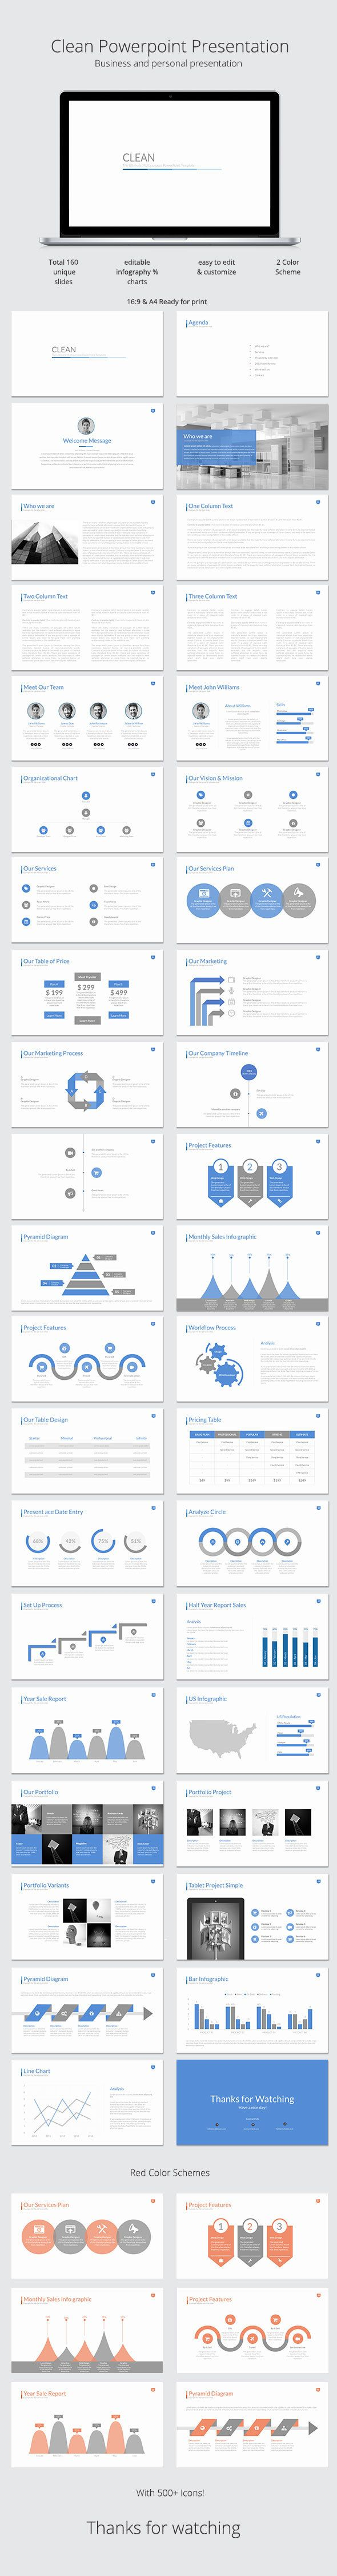 Coolmathgamesus  Seductive  Ideas About Powerpoint Presentations On Pinterest With Remarkable Clean Powerpoint Template With Attractive Free Powerpoint Download Mac Also Download Latest Version Of Powerpoint In Addition Powerpoint Animals And Powerpoint On Meiosis As Well As Scoreboard Template For Powerpoint Additionally Powerpoint Nervous System From Pinterestcom With Coolmathgamesus  Remarkable  Ideas About Powerpoint Presentations On Pinterest With Attractive Clean Powerpoint Template And Seductive Free Powerpoint Download Mac Also Download Latest Version Of Powerpoint In Addition Powerpoint Animals From Pinterestcom